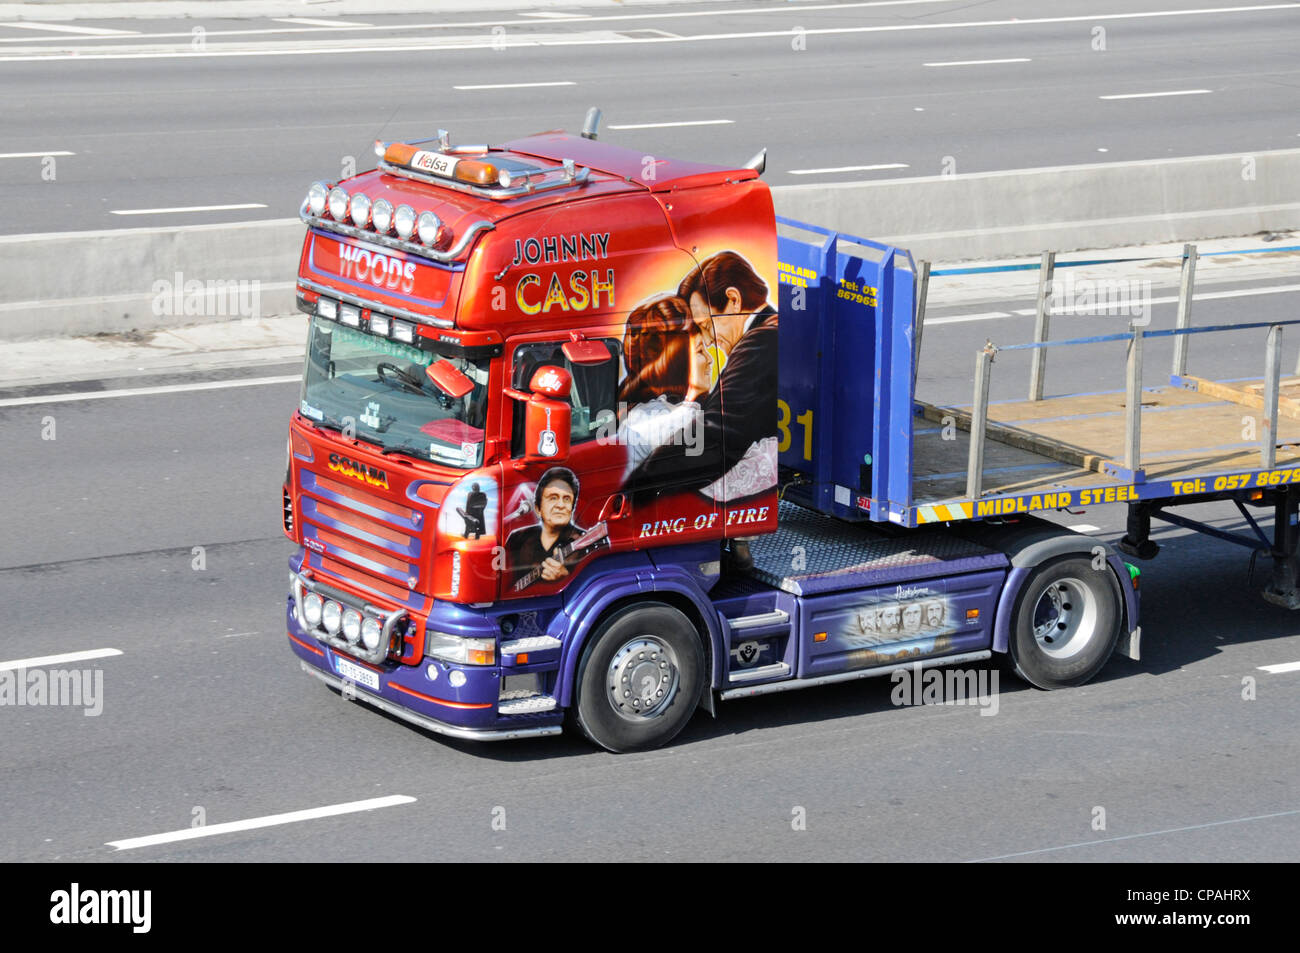 Scania truck with colourful Johnny Cash graphics on side of cab ...